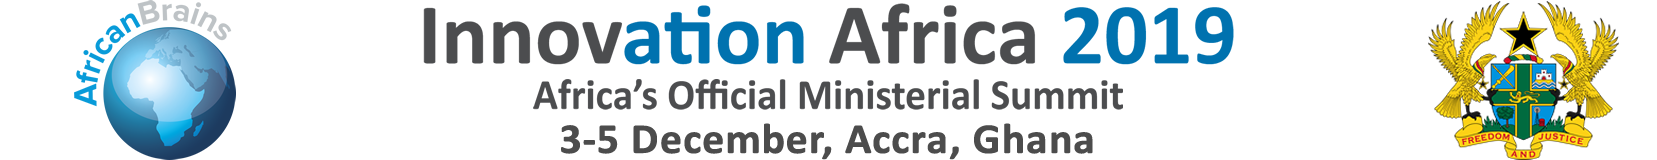 Africa's Official Ministerial Summit - 3-5 December, Accra, Ghana